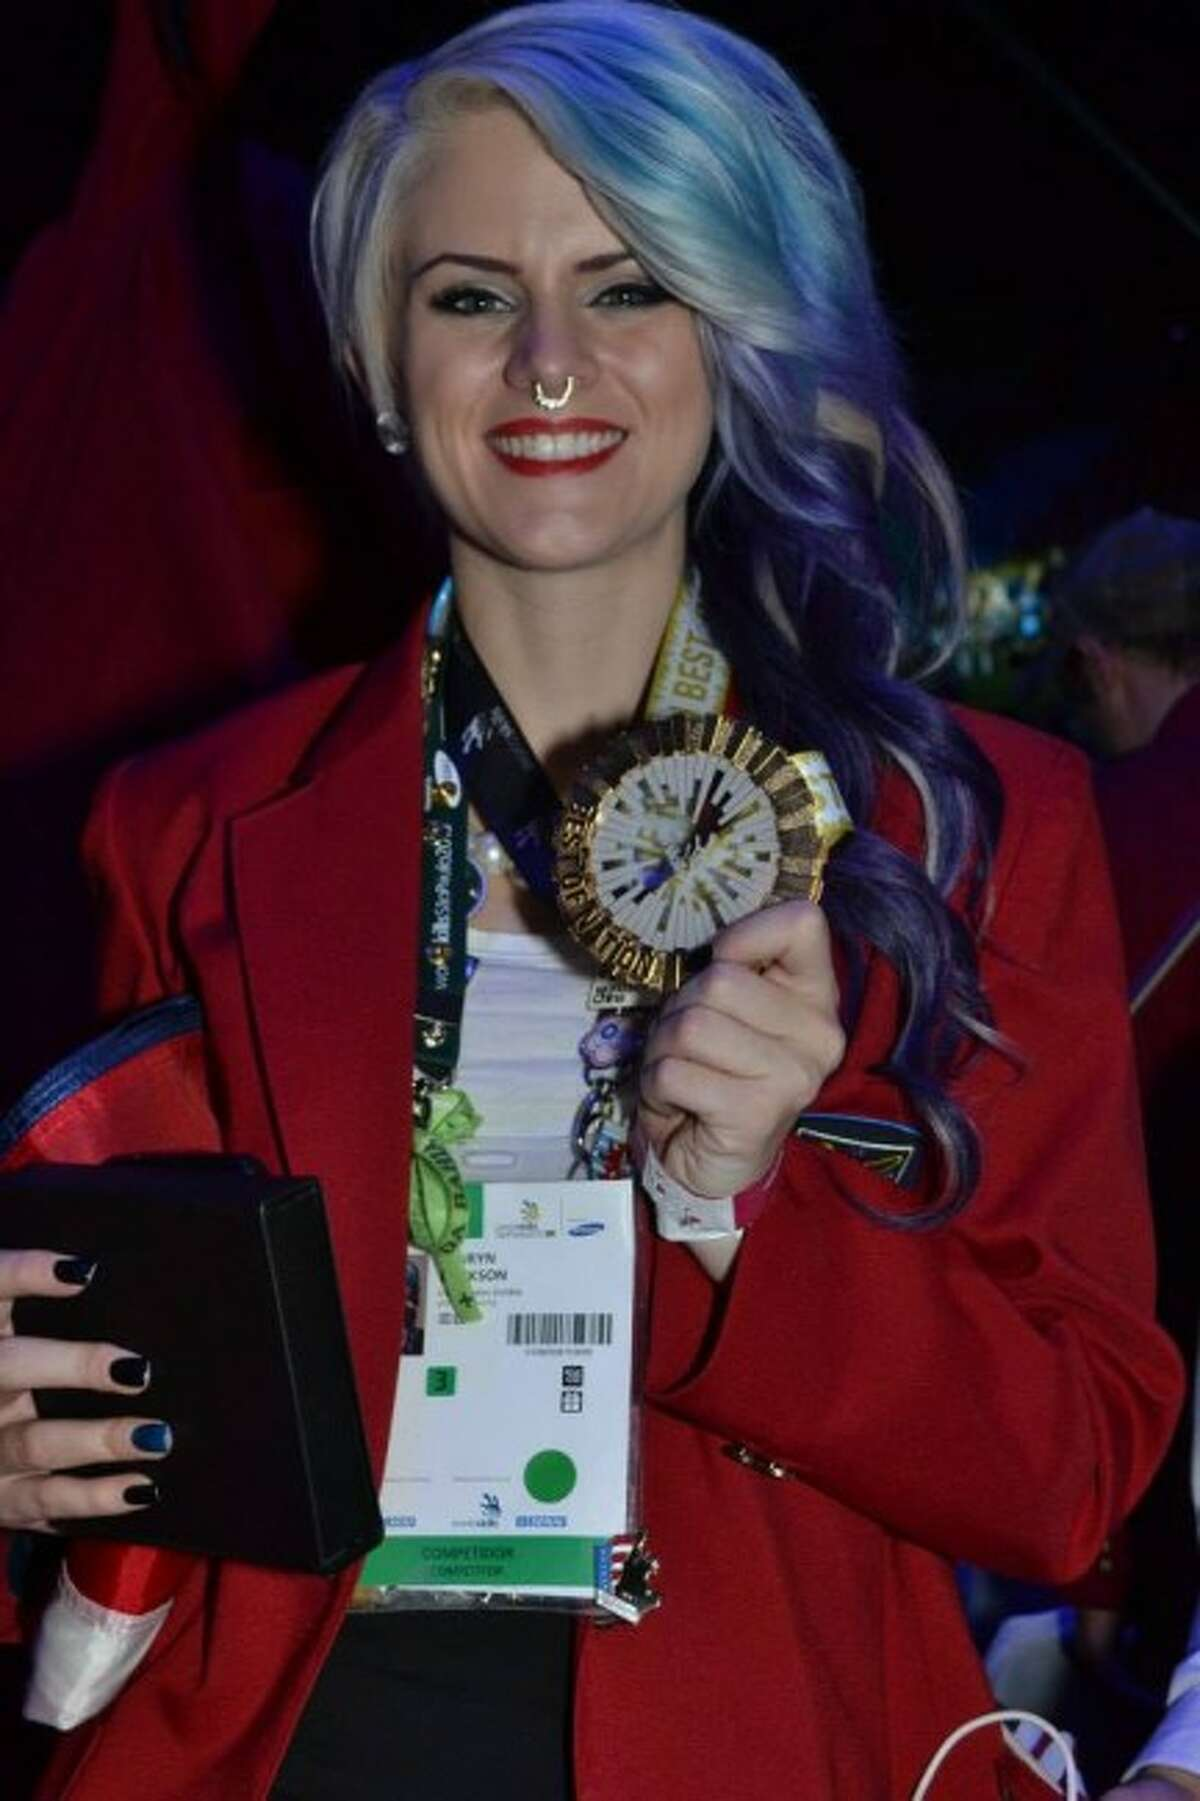 HONORS: Lauryn Erickson poses with her Best of Nation medal after competing at WorldSkills. The award is given to one competitor from each country's team.